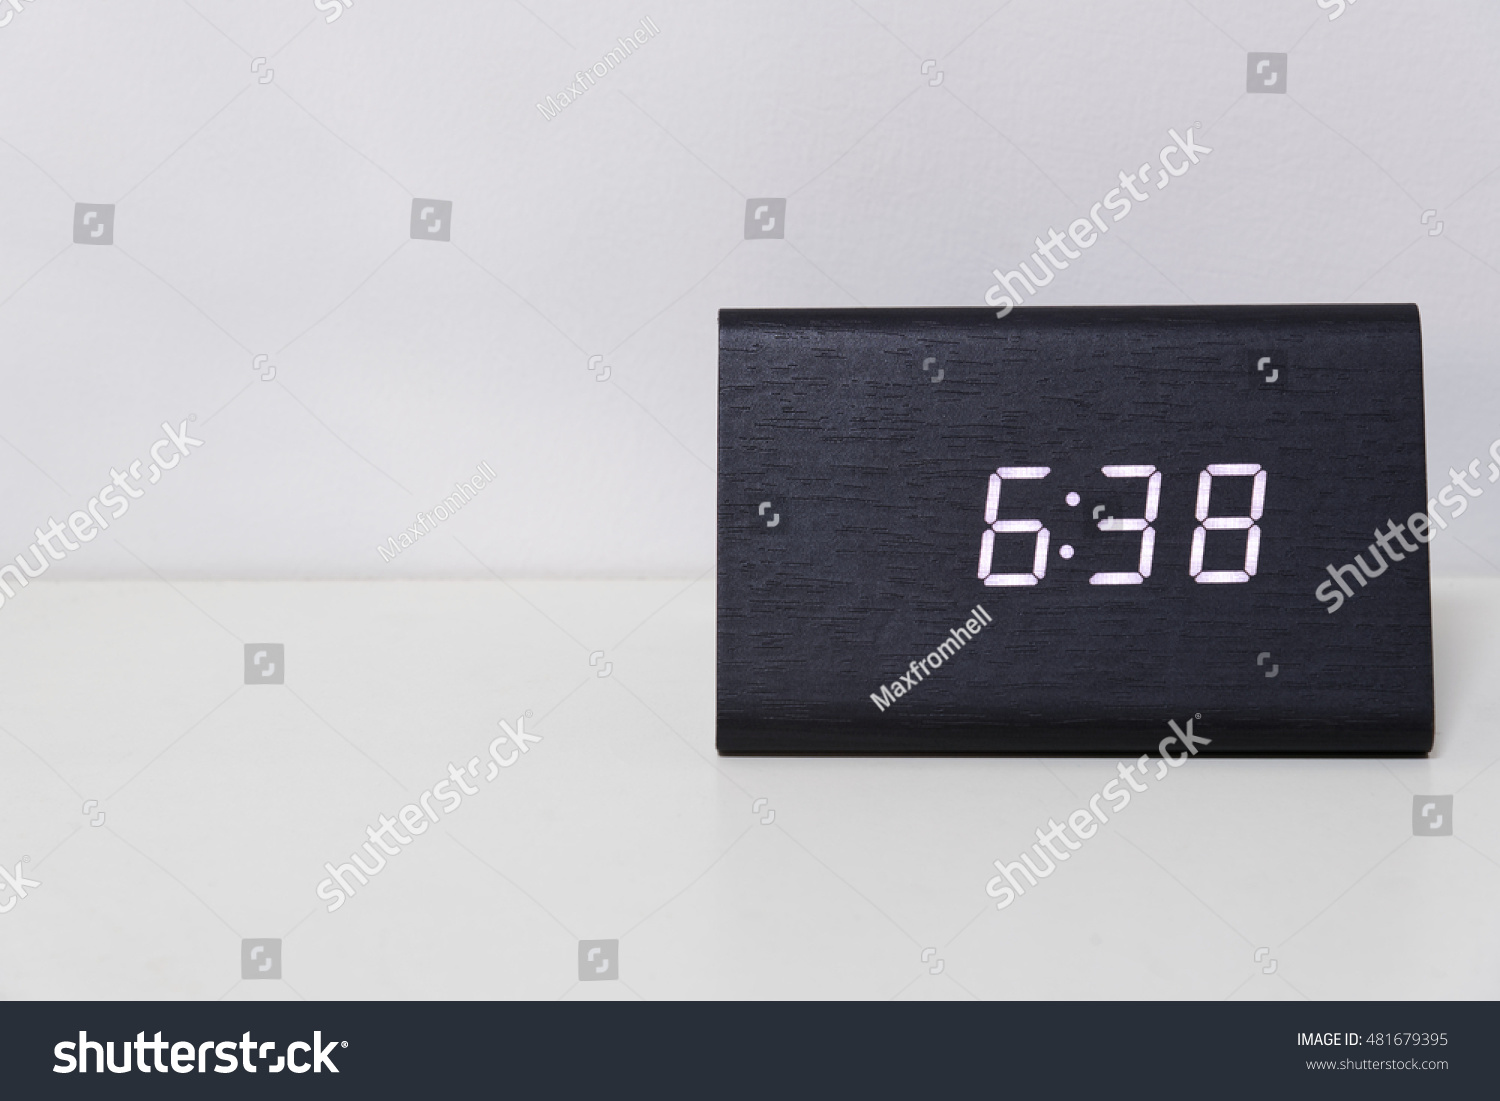 Black digital clock on a white background showing time 6:38 (six hours thirty-eight minutes)